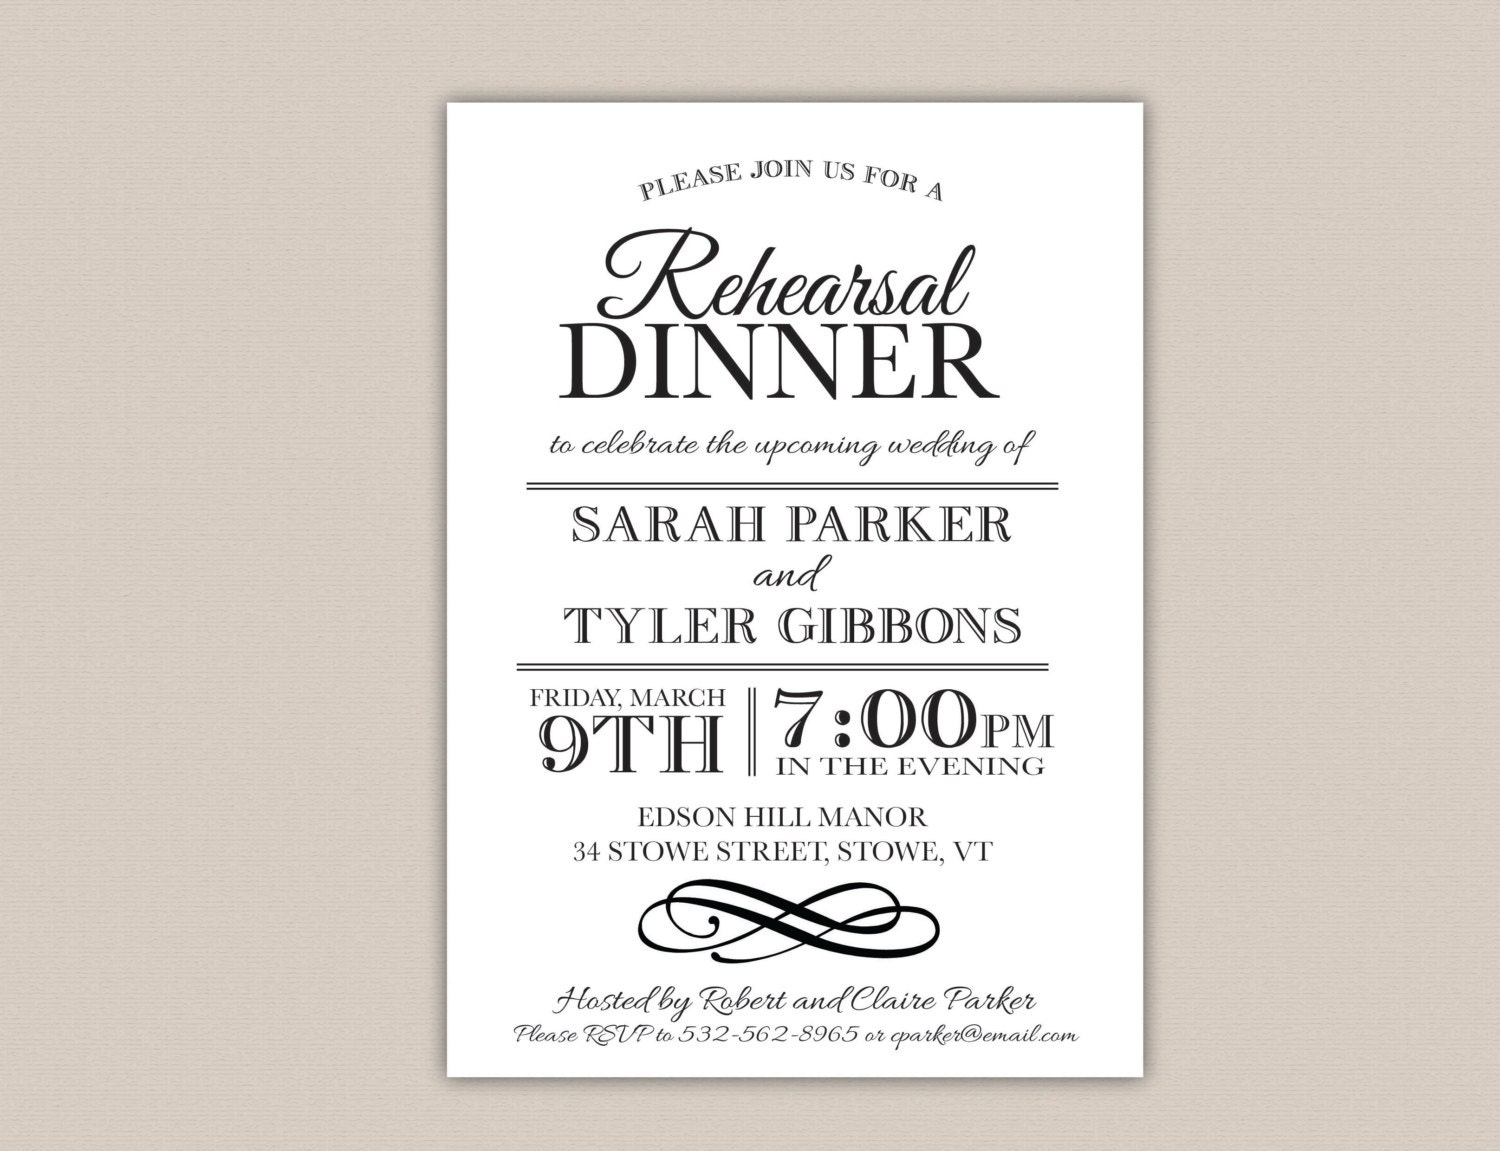 Captivating Dinner Invite Template Free With Dinner Invitation Template Free